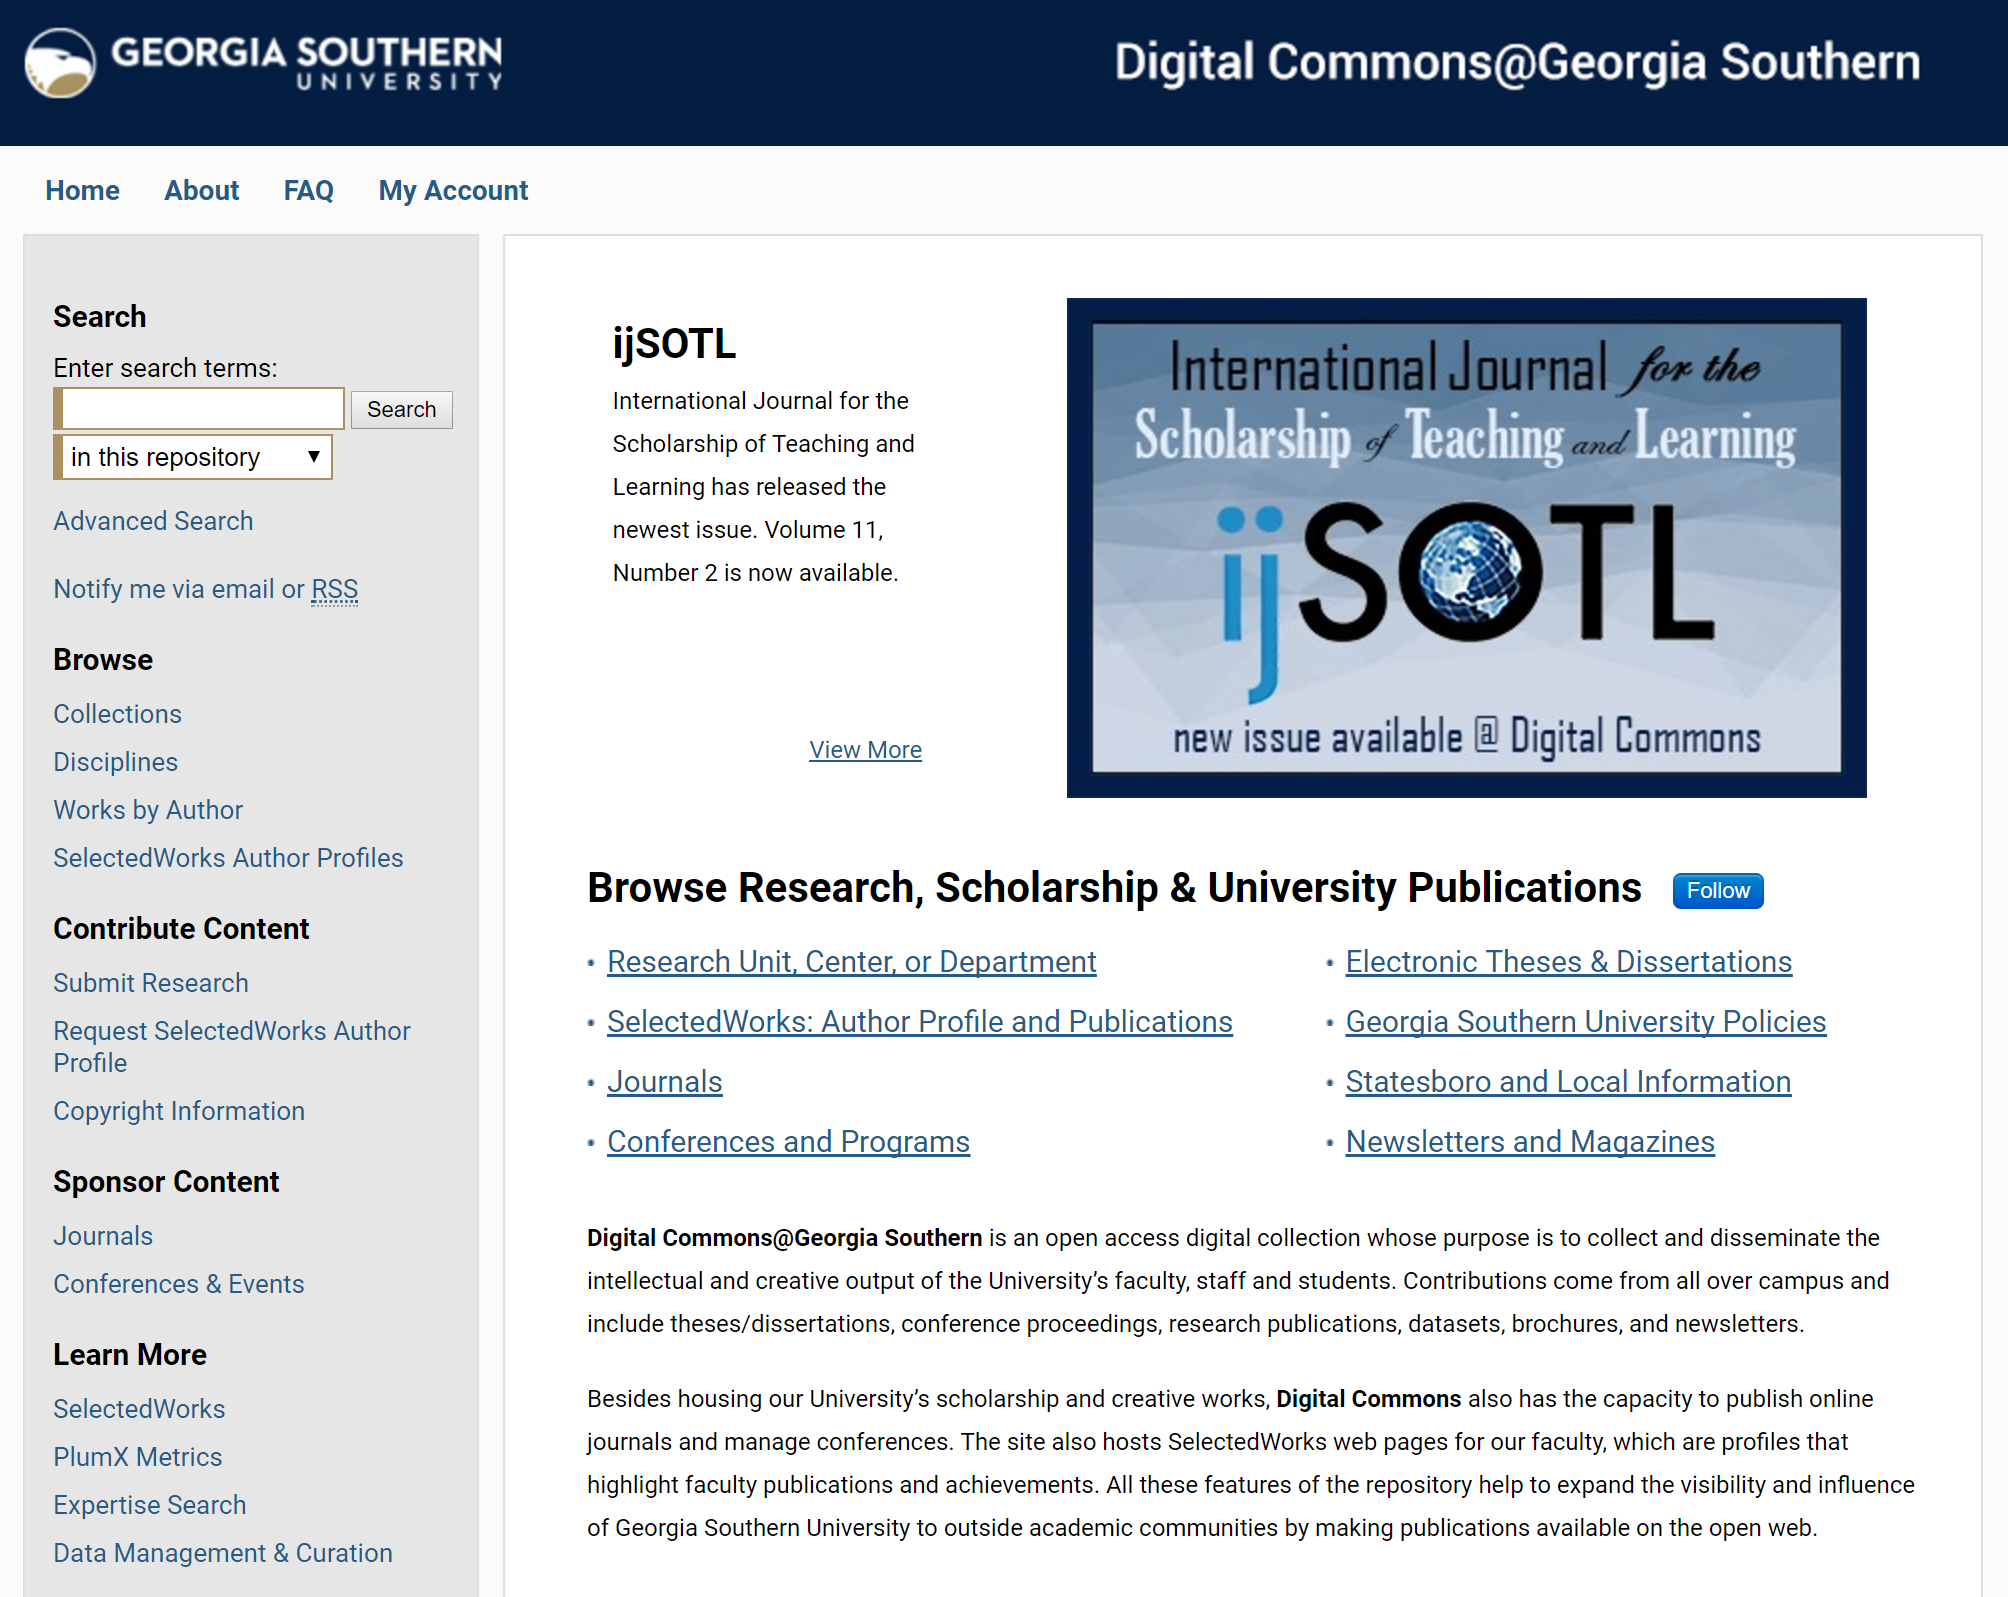 Digital Commons Homepage